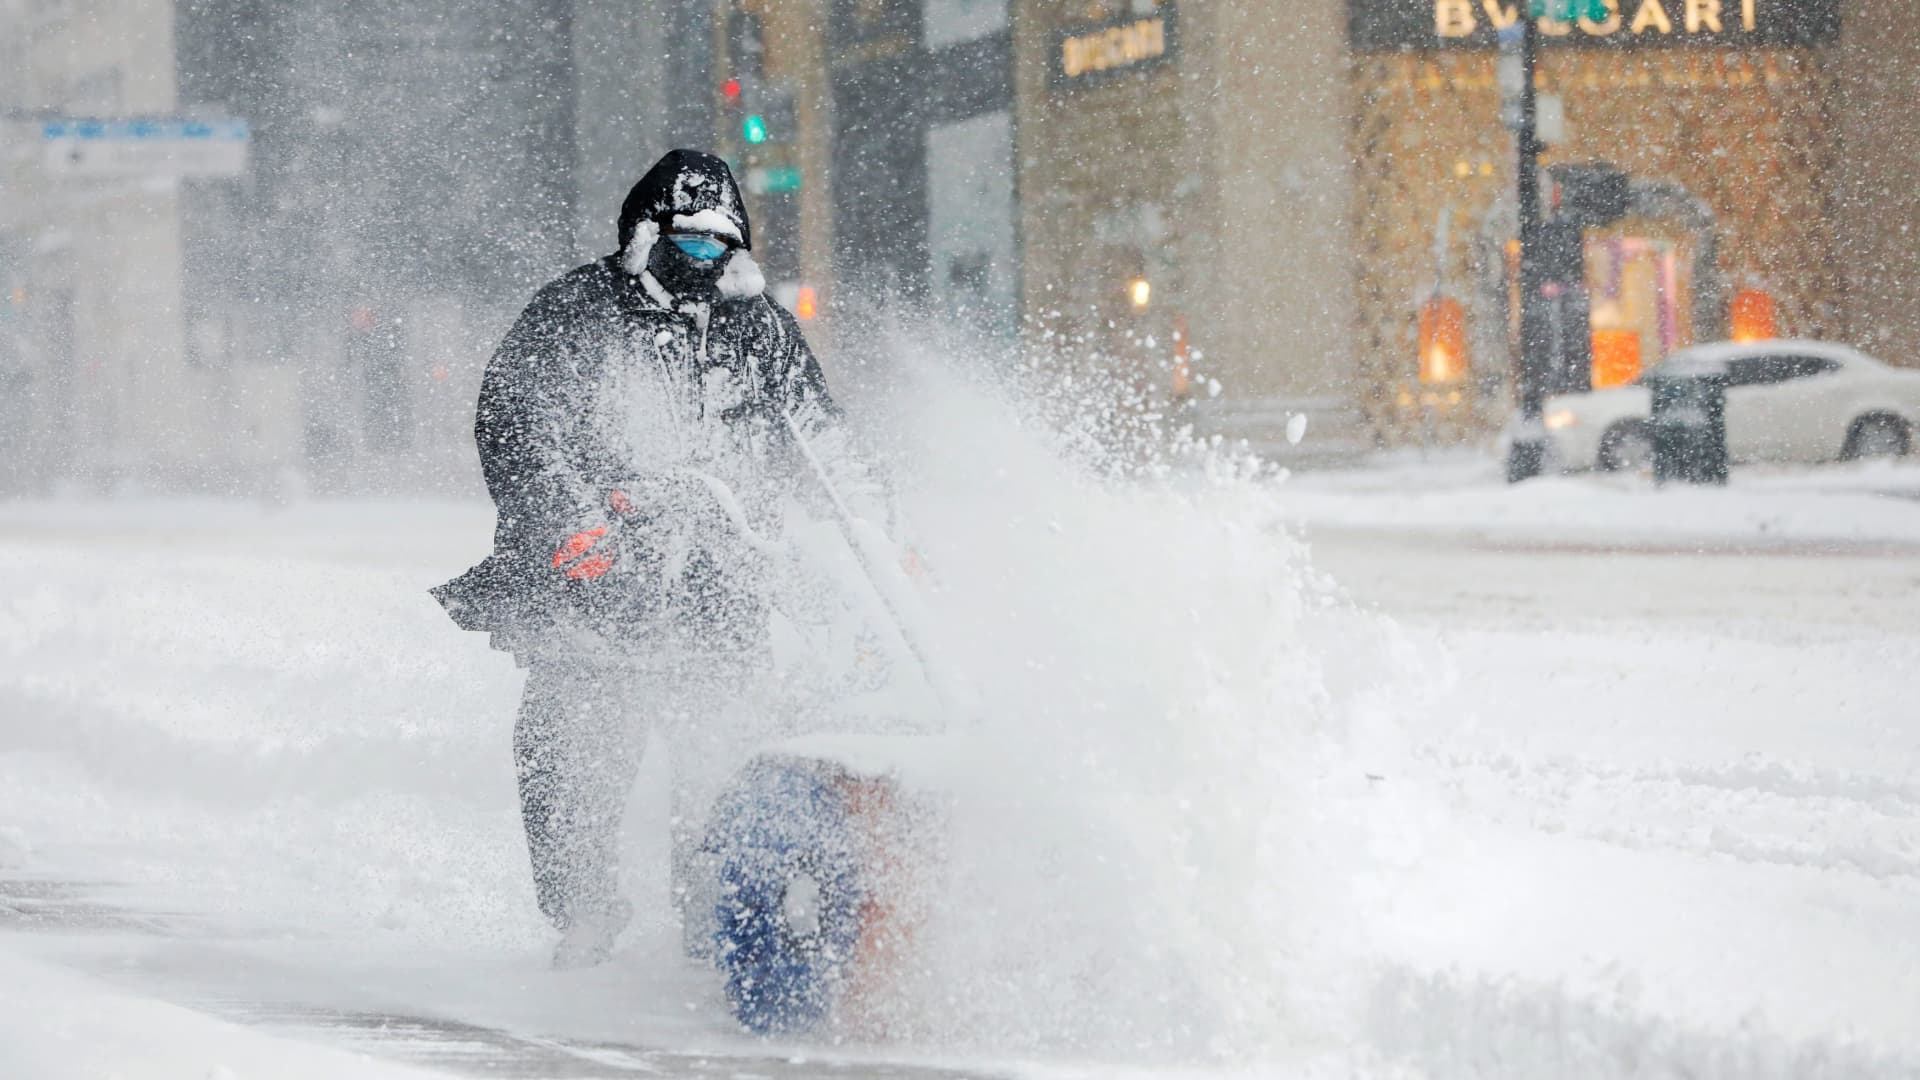 A worker clears a street during a snow storm, amid the coronavirus disease (COVID-19) outbreak, in New York, February 1, 2021.